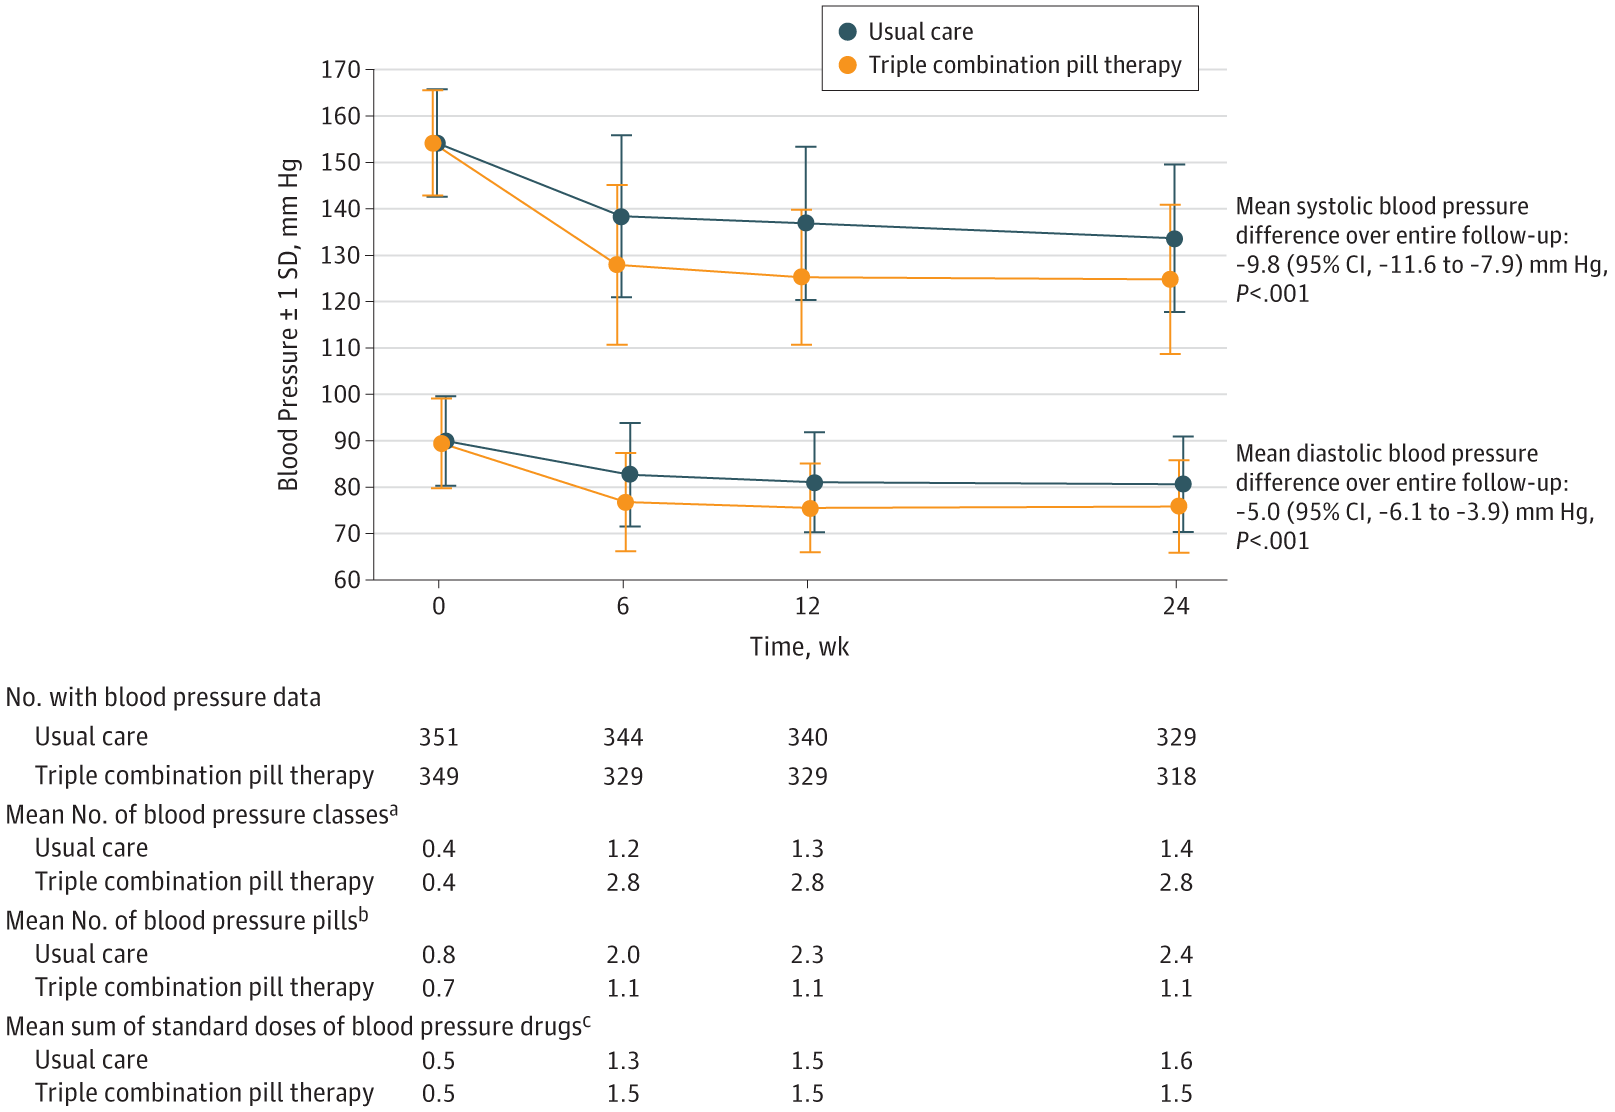 37469f6fc9 Mean Blood Pressure in the 2 Treatment Groups During the Course of the Trial